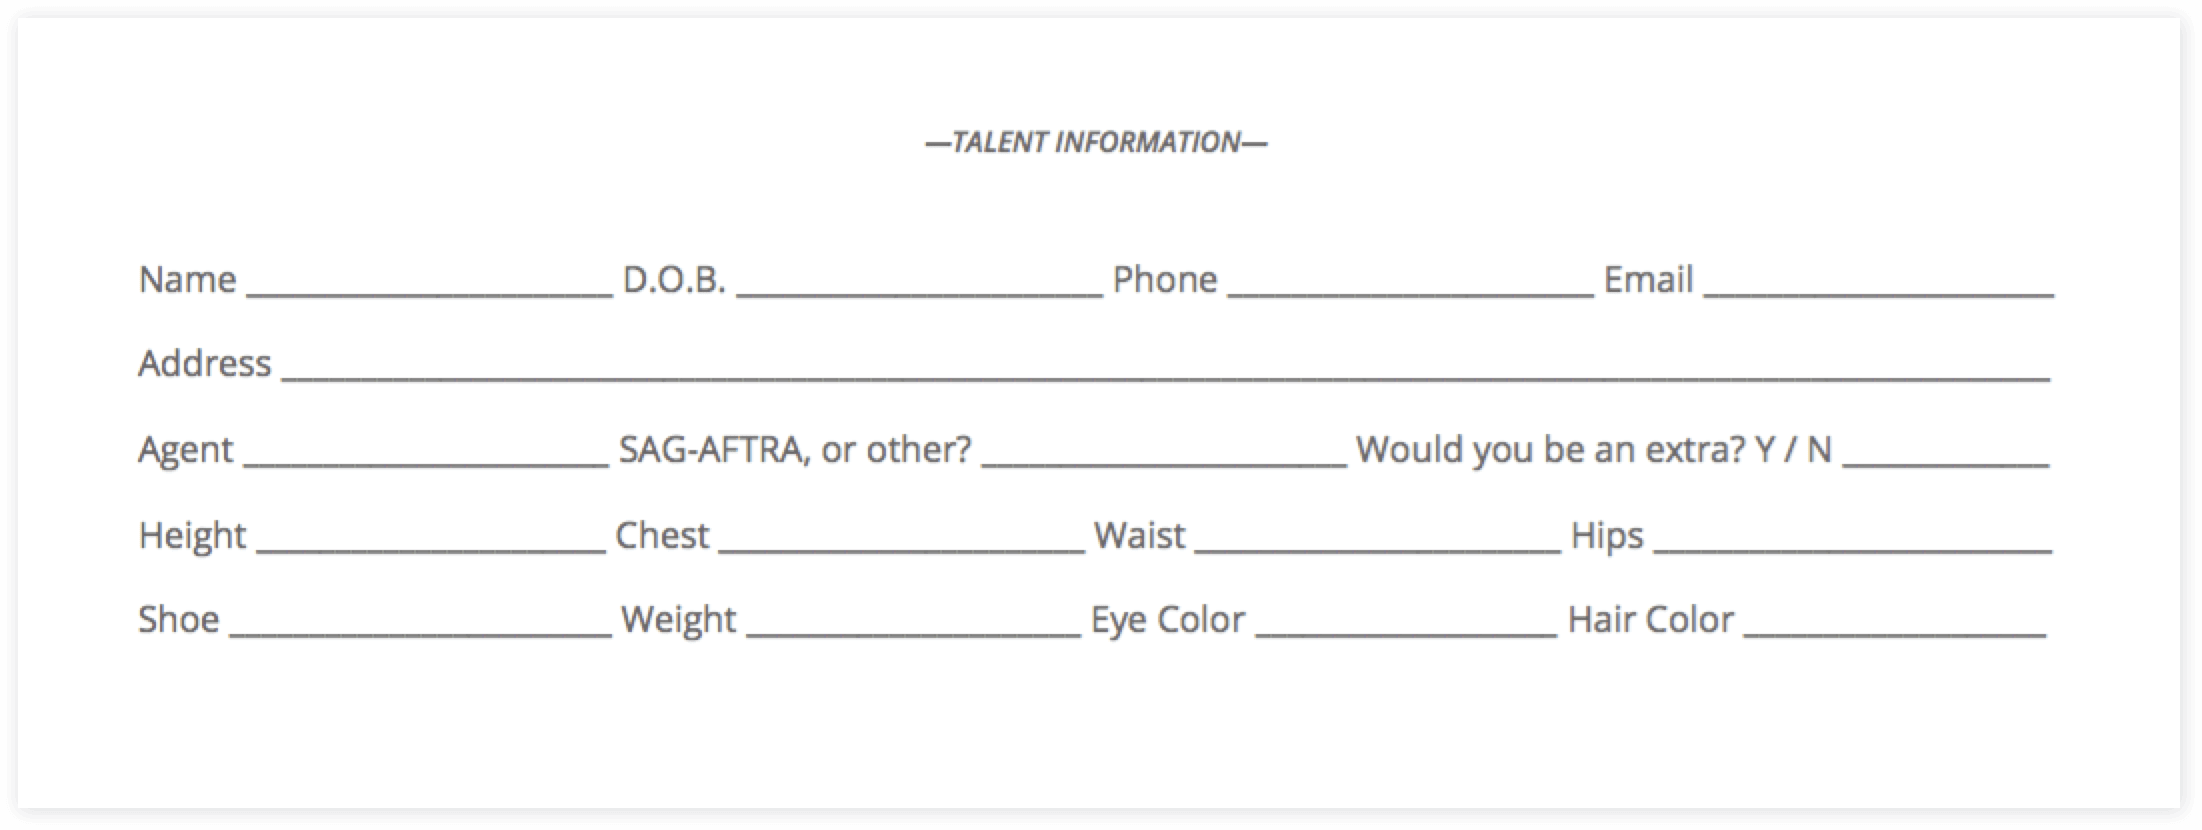 The Ultimate Guide to Casting Auditions (with FREE Casting Sheet Template) - Casting Sheet Bottom Half